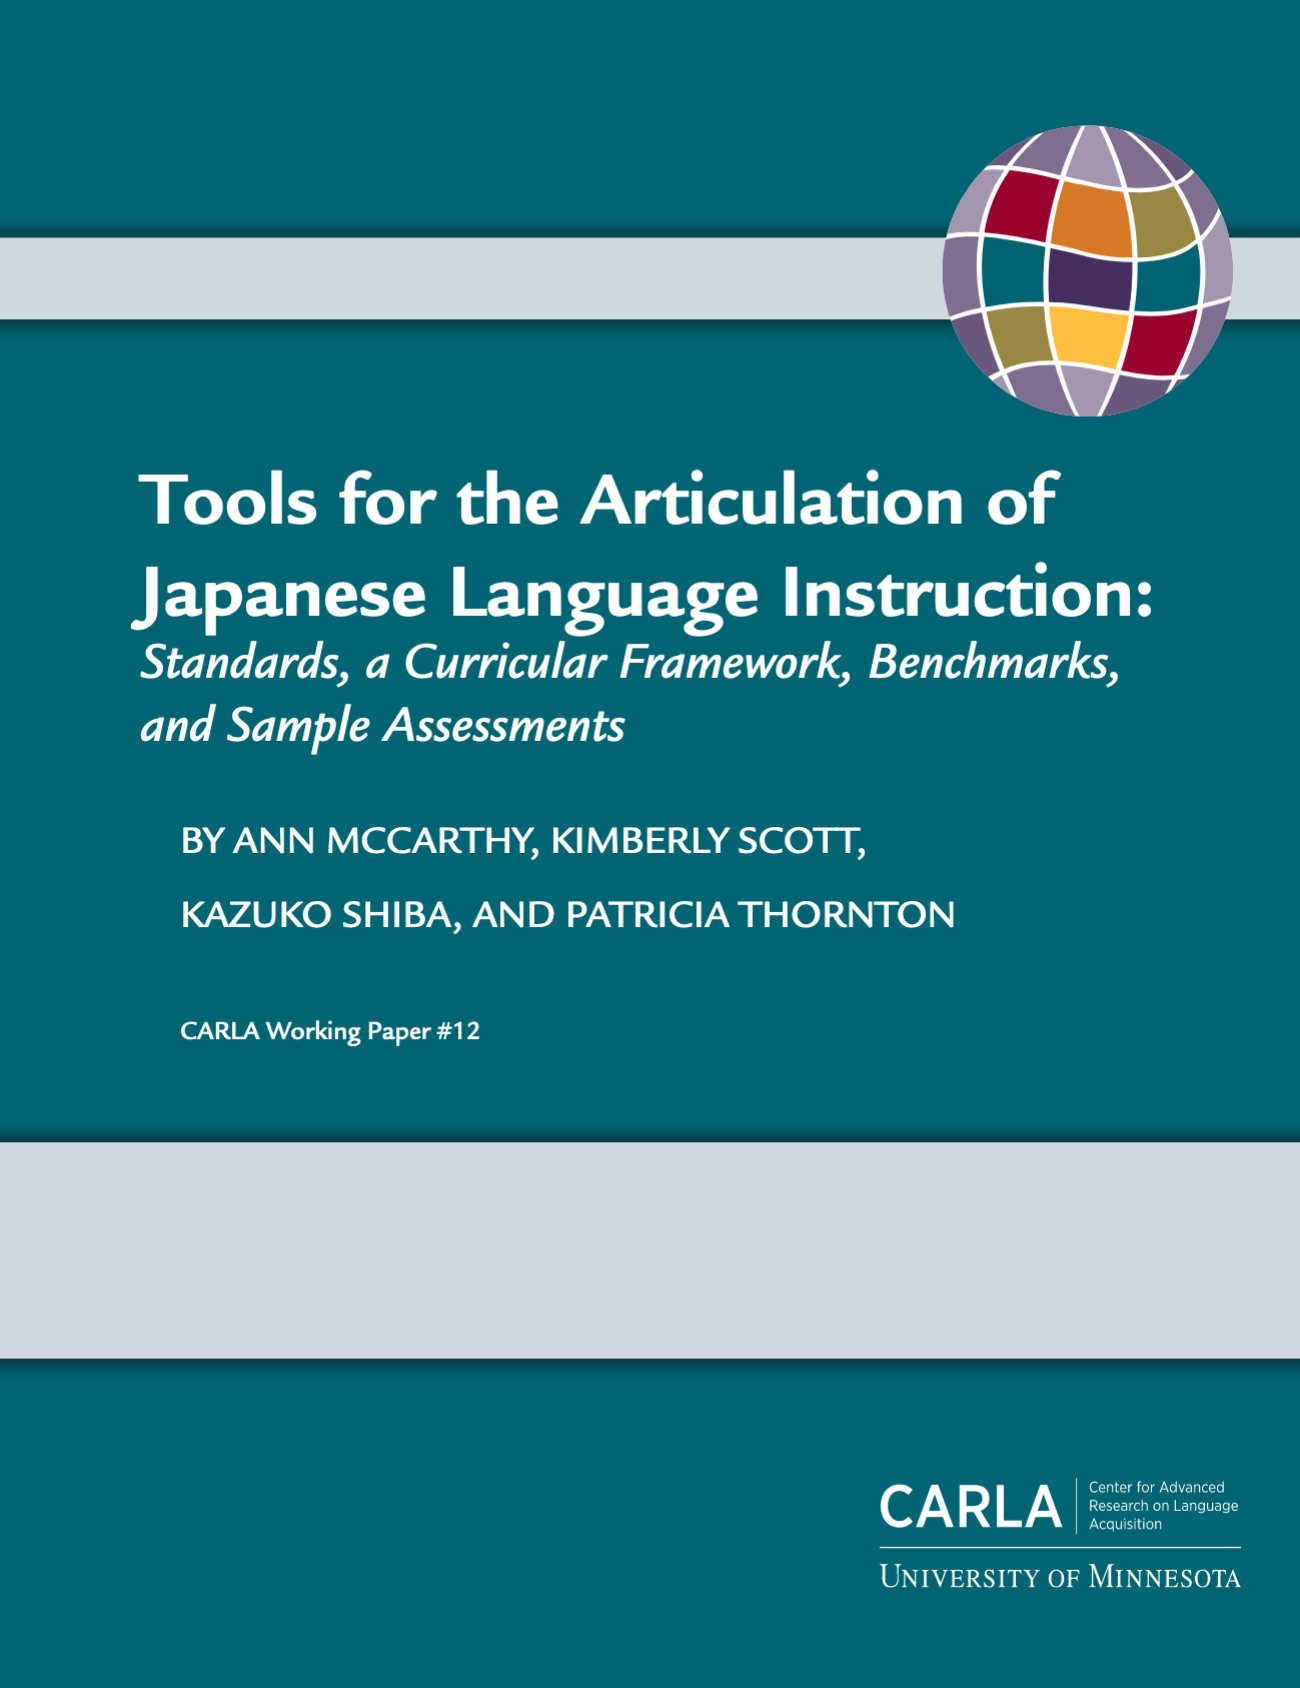 Tools for the Articulation of Japanese Language Instruction